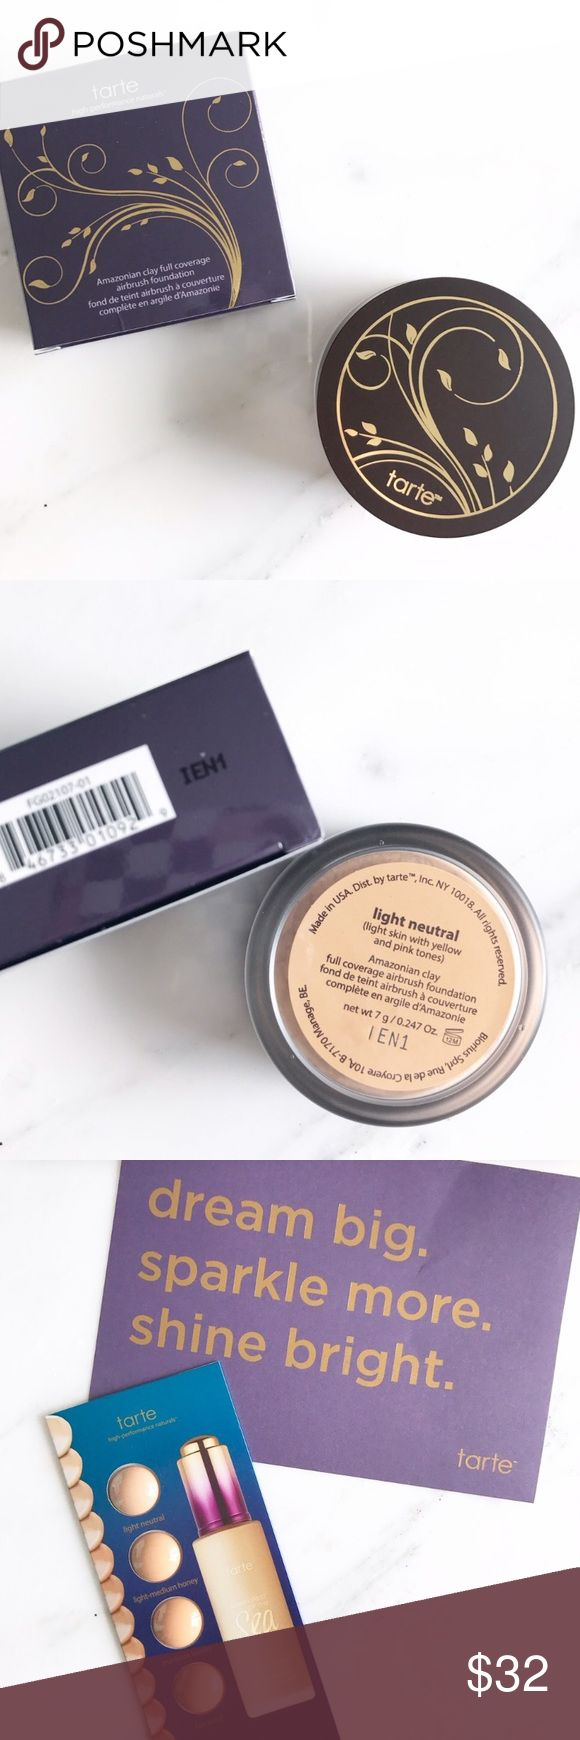 tarte amazonian clay airbrush foundation PRICE FIRM | shade: light neutral | new in box | full size | comes w a tarte card and foundation sample card | this foundation is waterproof which perf for the summer ☀️ tarte Makeup Foundation